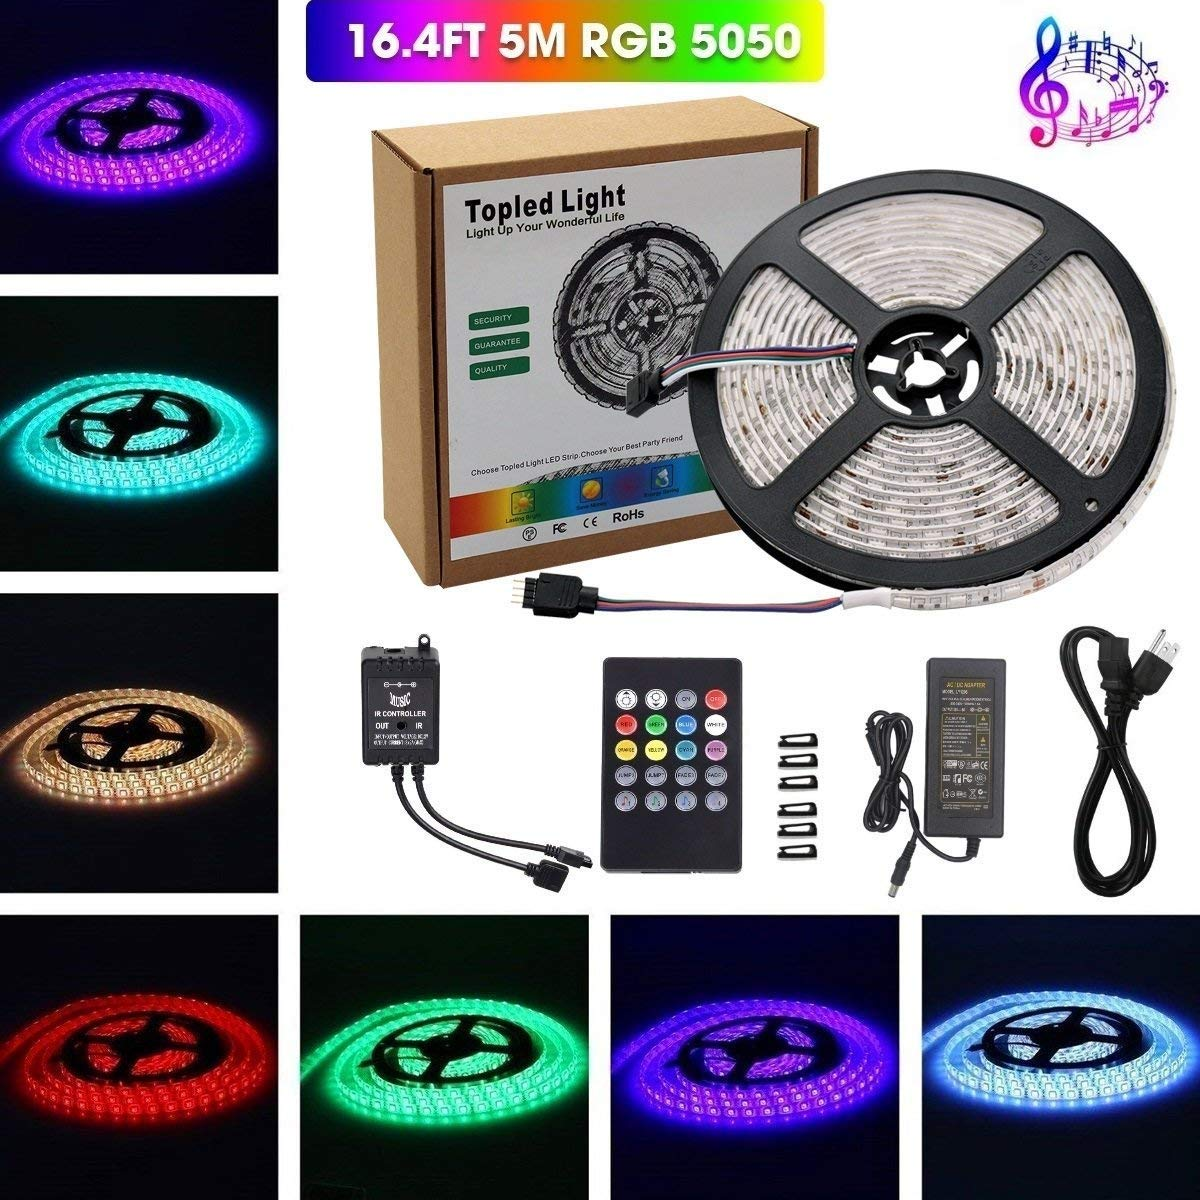 Music Led Strip Lighttopled Light Ir Sound Lighting Wiring System Lights Activated 5m 5050 Rgb Waterproof 300leds Flexible Color Changing Kit With